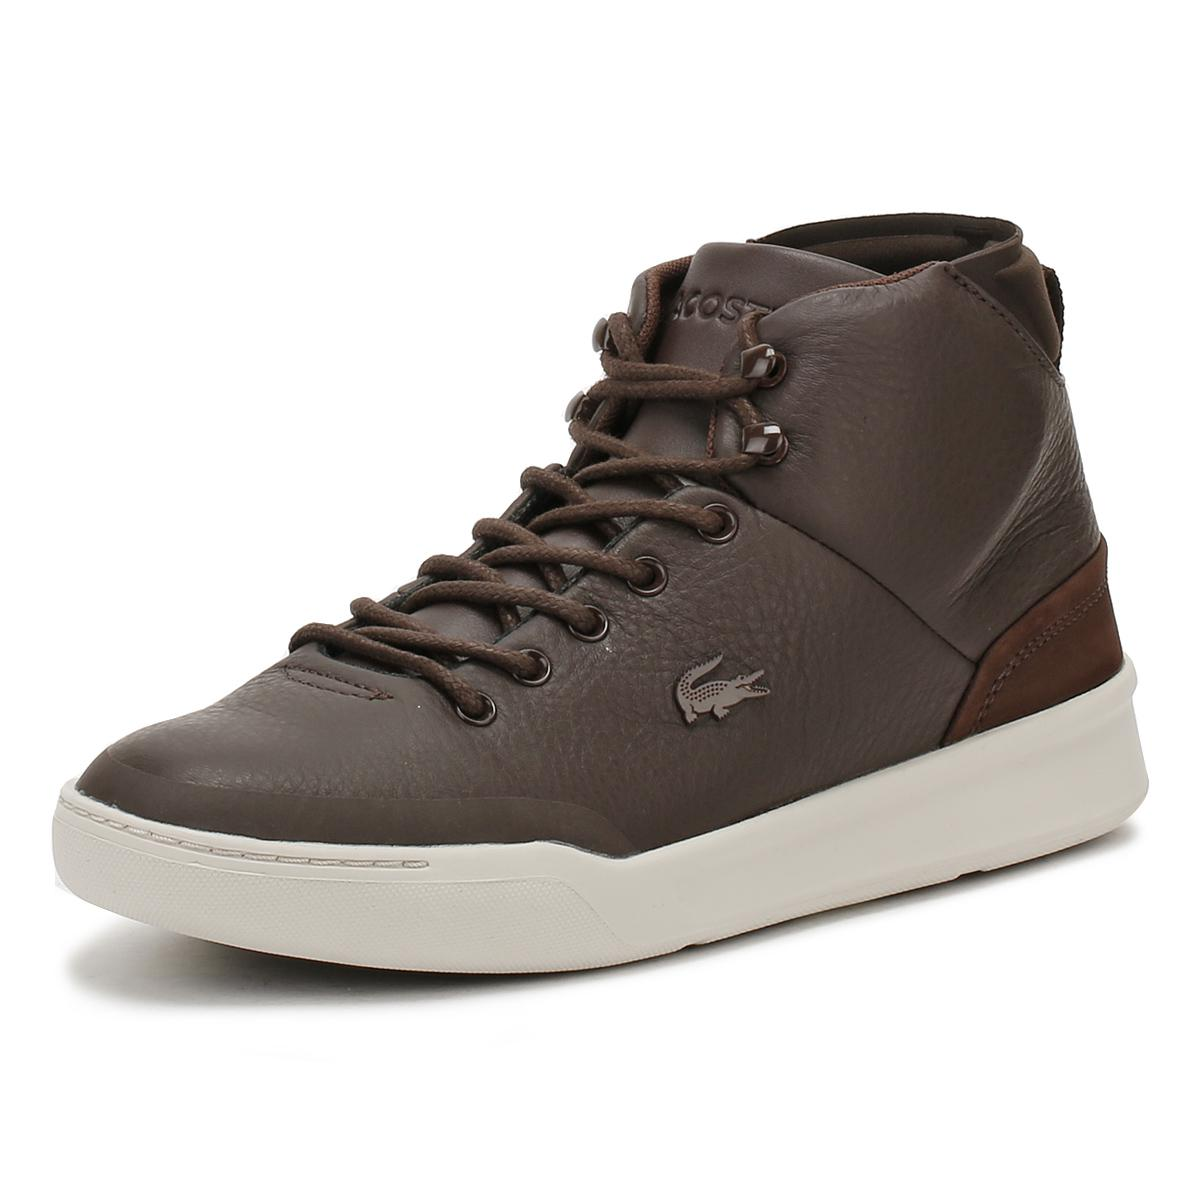 462f25392c93 Lyst - Lacoste Mens Dark Brown Explorateur Classic 317 1 Trainers in ...